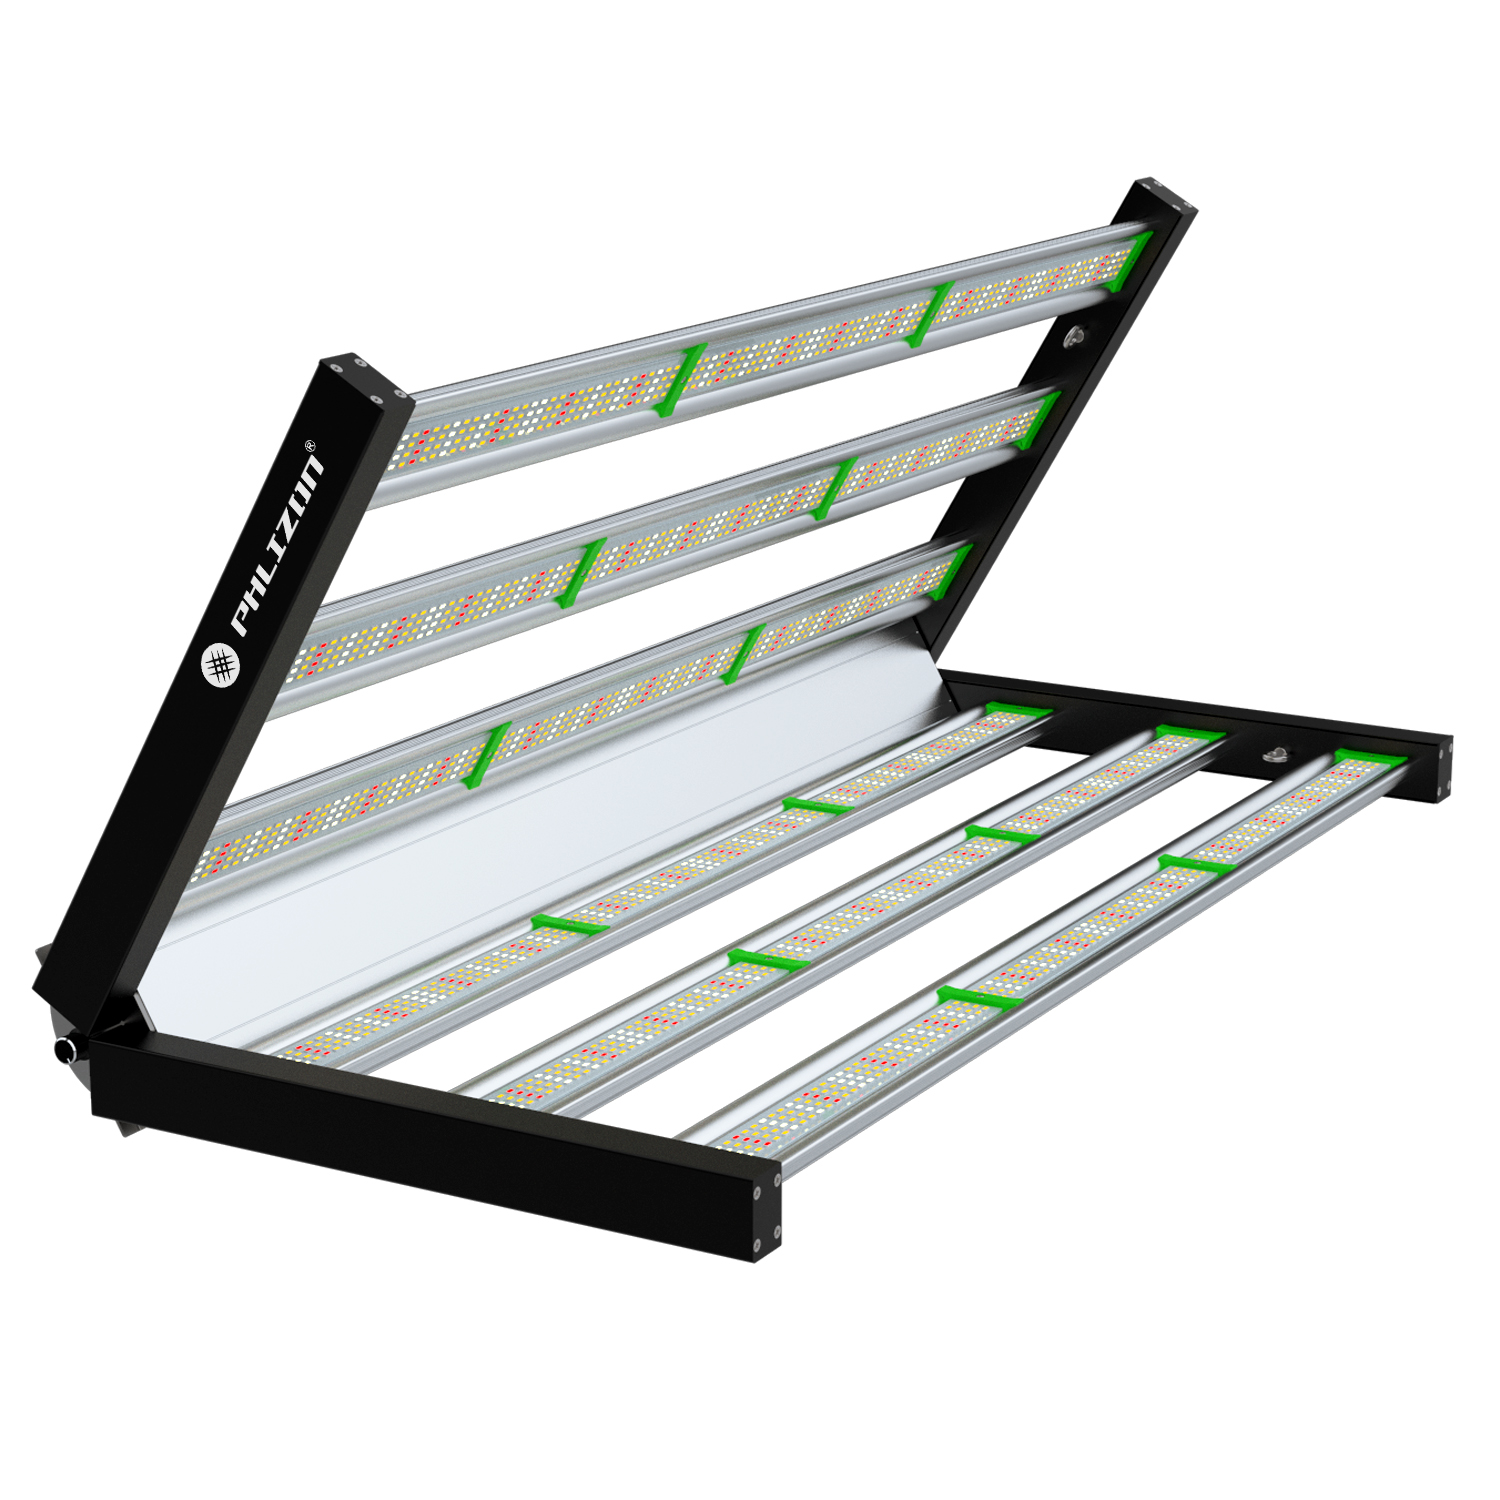 Cost-effective Best Price 720W Folding LED Grow Light LED Bar Grow Light to Replace Growers Choice Gavita Fluence